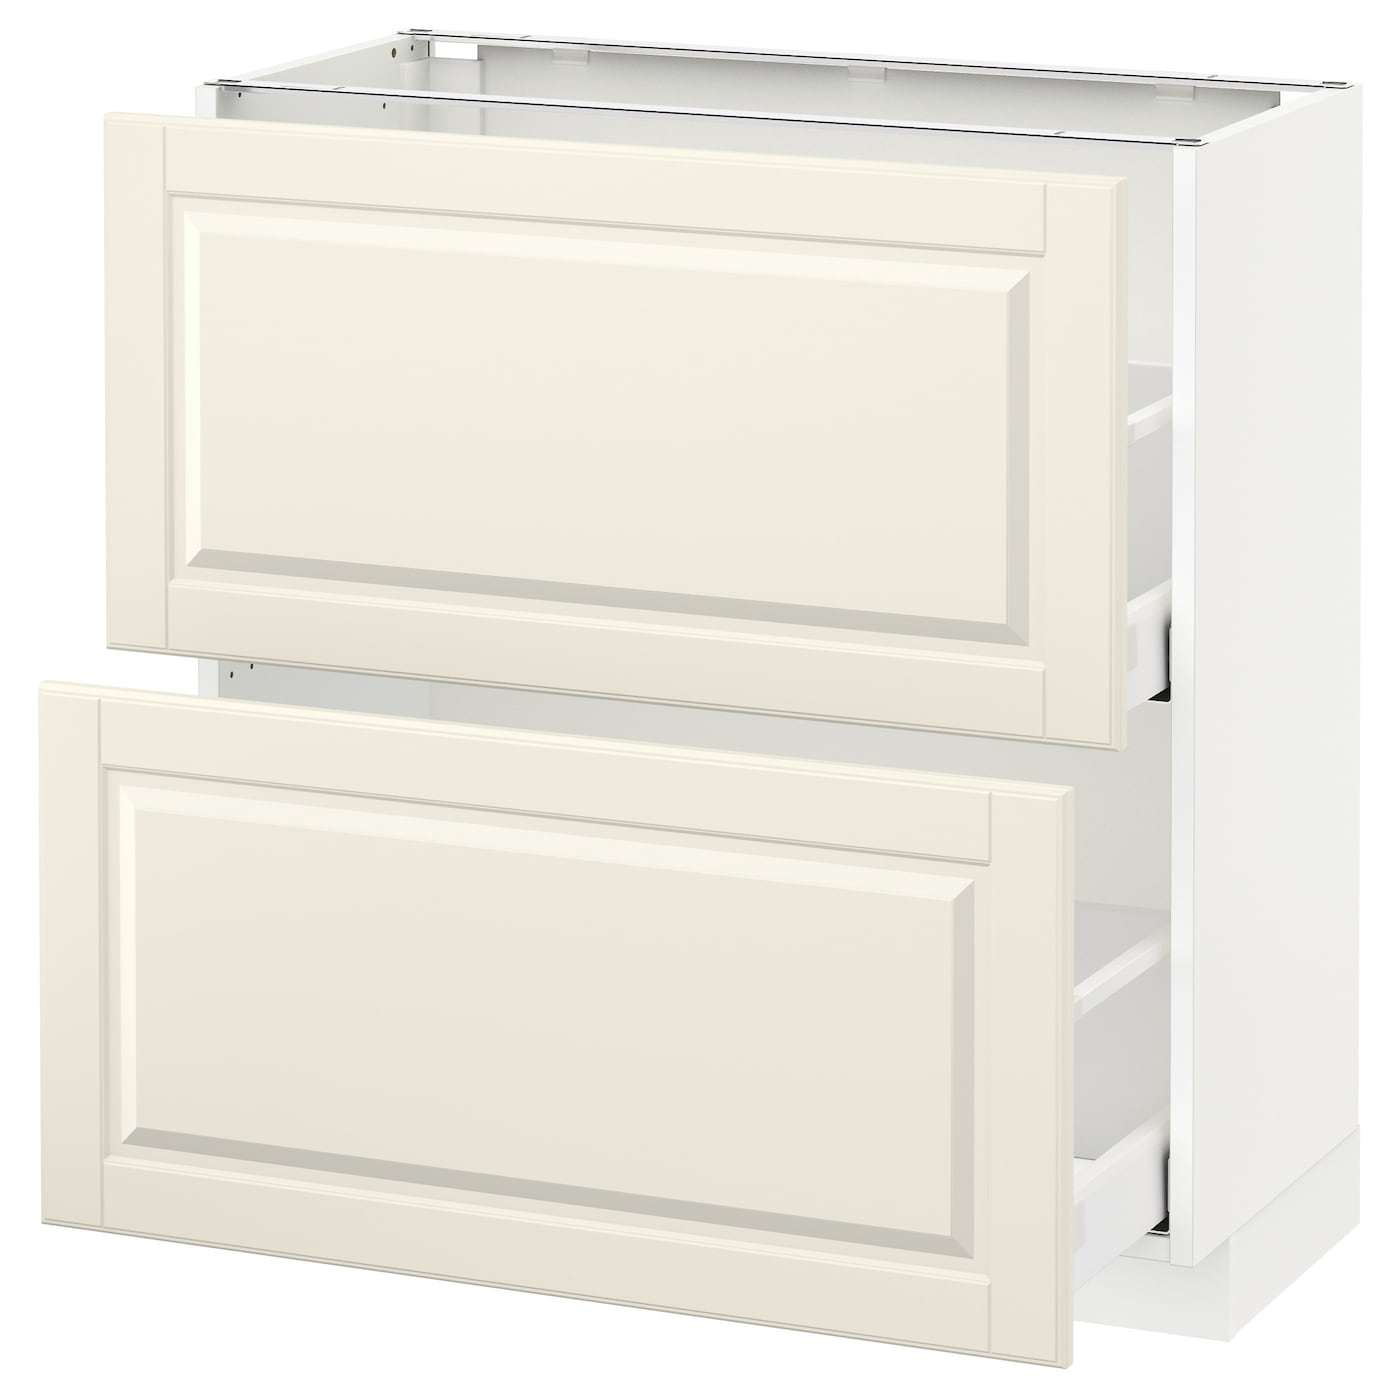 Base Cabinet With 2 Drawers Metod Maximera White Bodbyn Off White